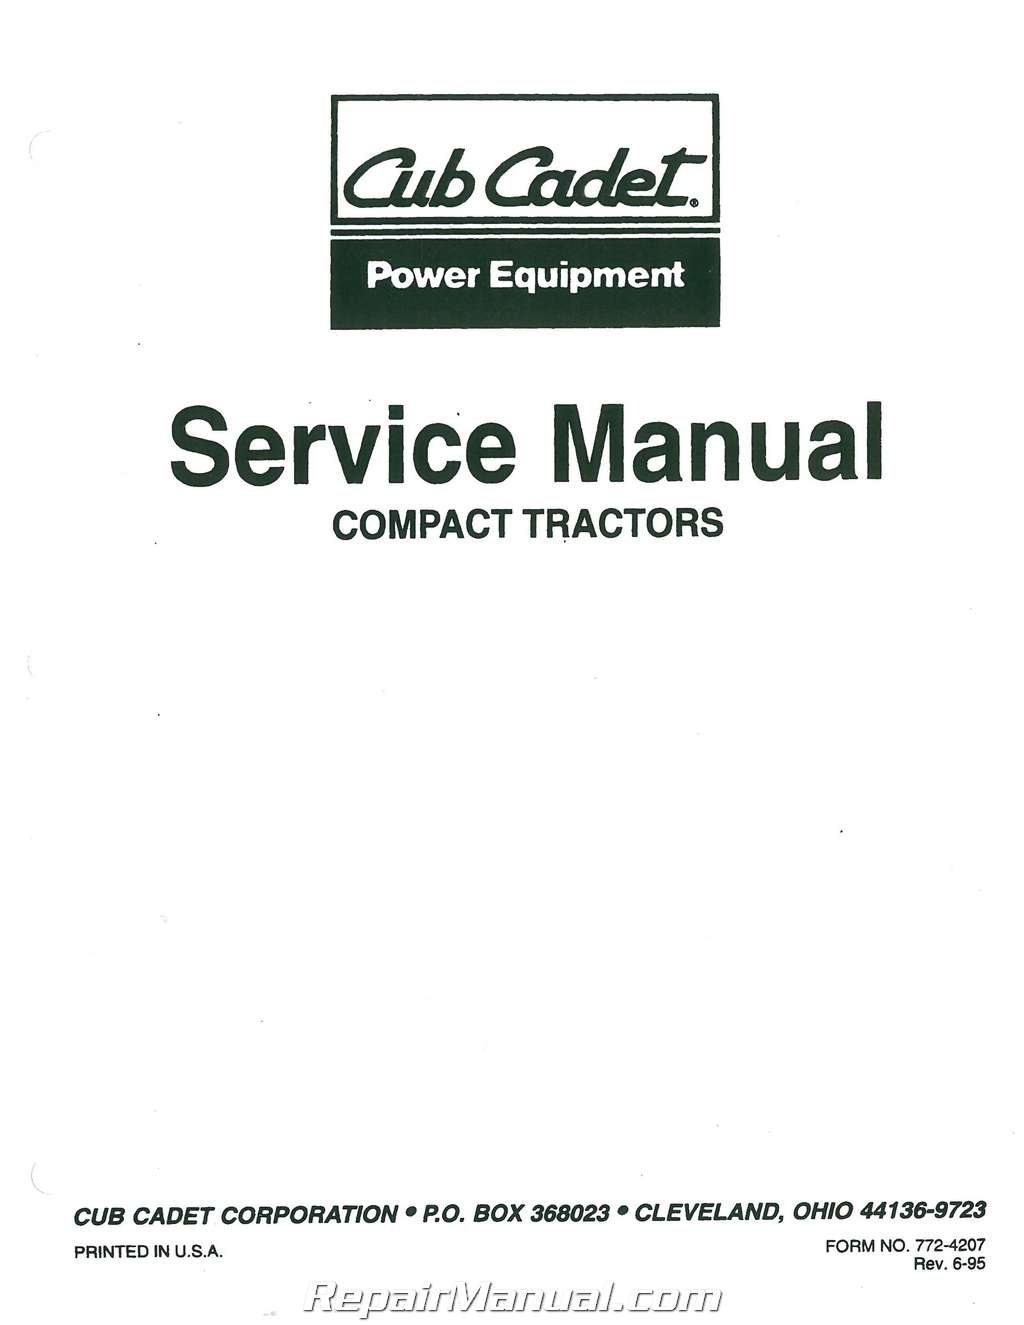 cub cadet 7000 series compact tractor service manual form 772 4207 rh repairmanual com 1862 Cub Cadet Starter Cub Cadet I1046 Parts Diagram